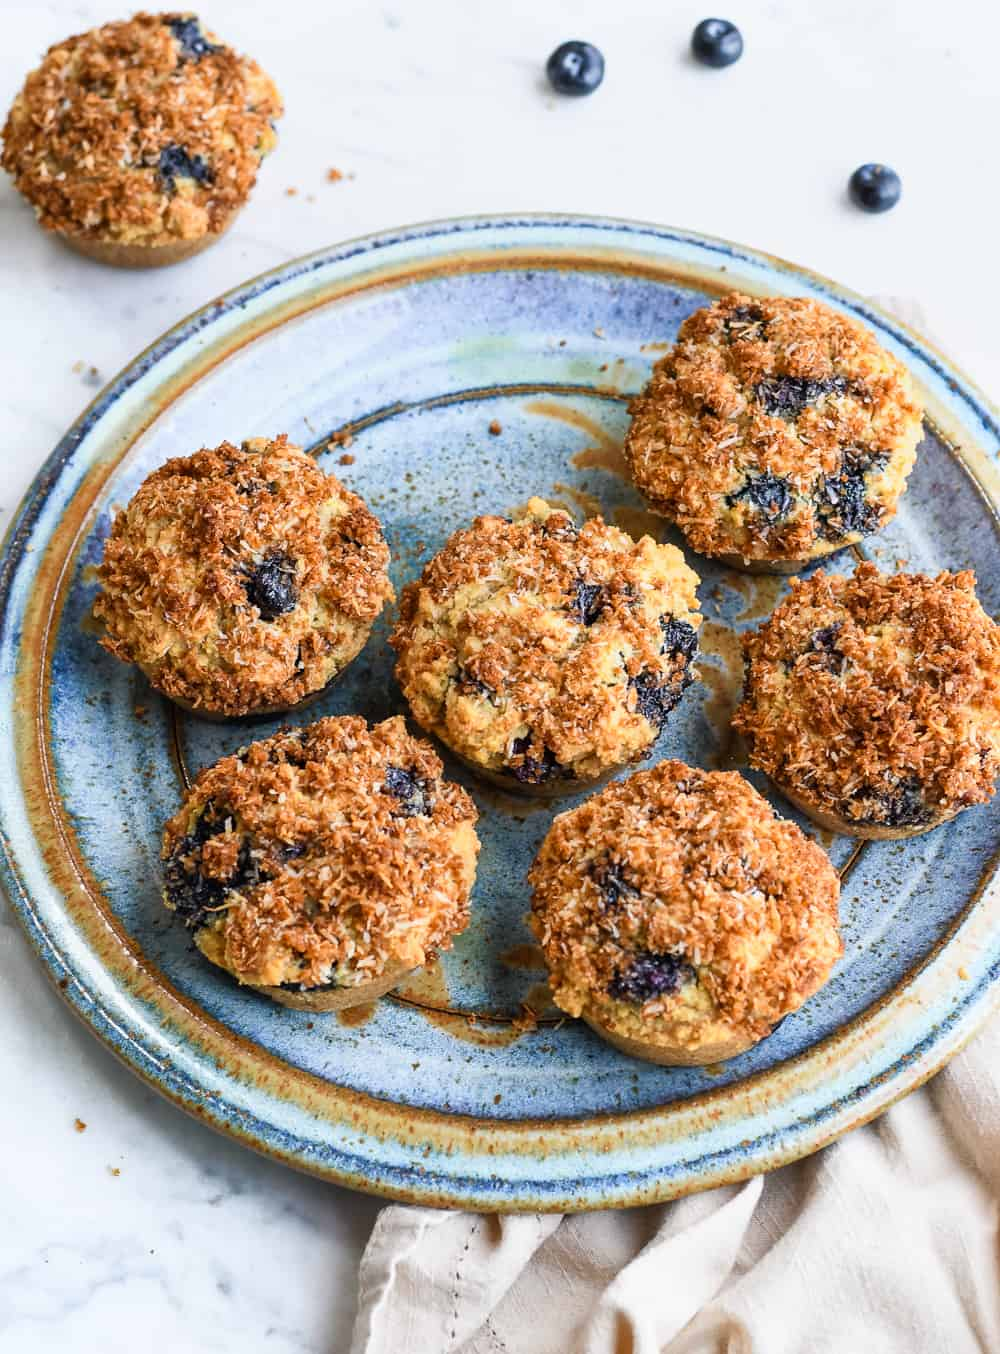 Paleo Blueberry Muffins on plate